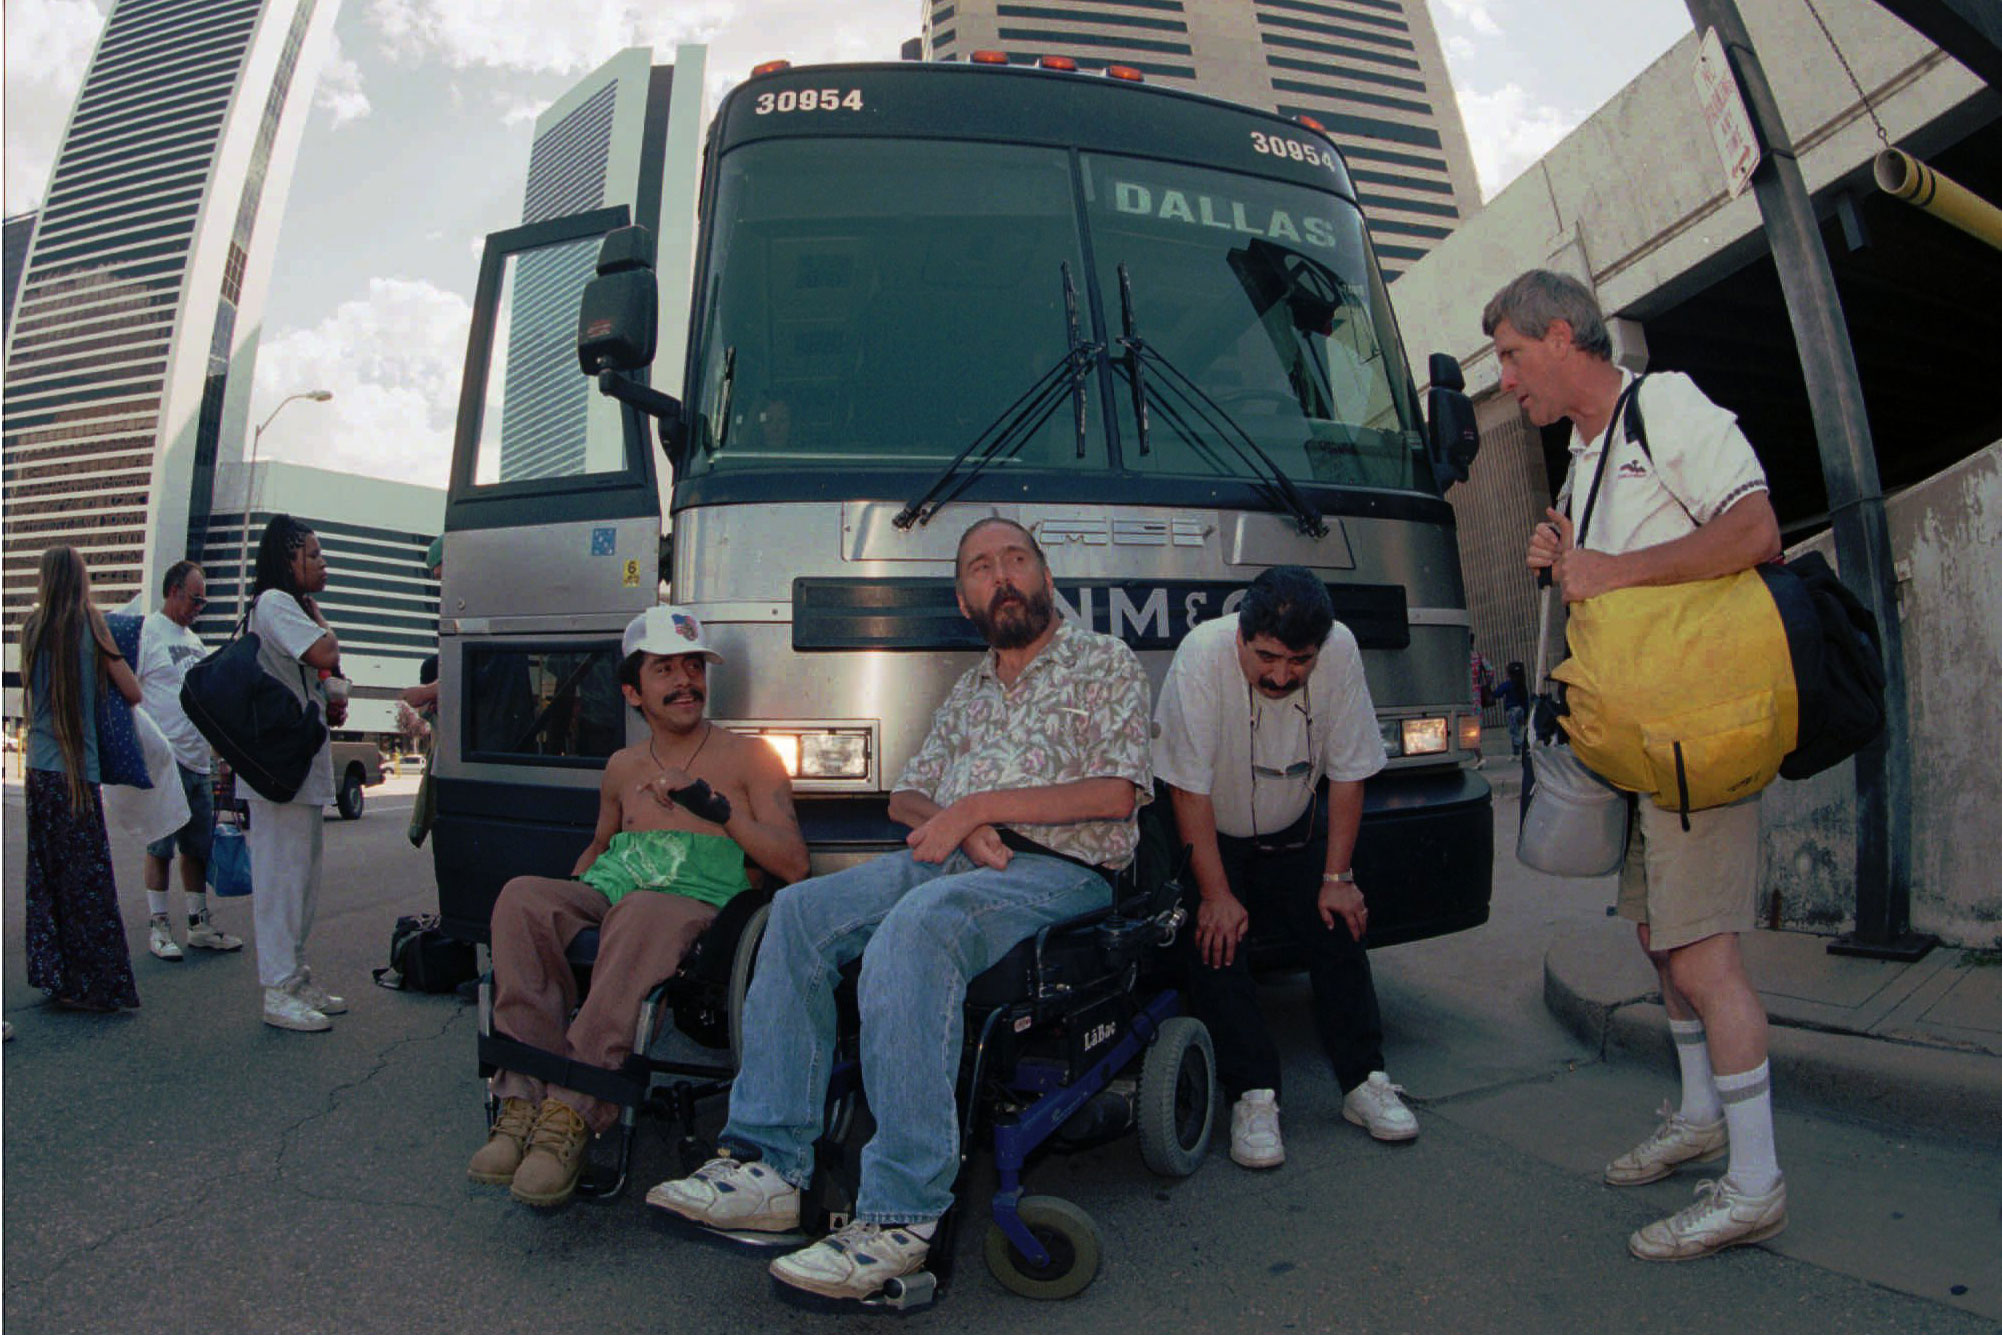 <p>Protesters Gil Casarez, left, and Michael Auberger, center, block an inbound Greyhound bus from entering the terminal in downtown Denver with the help of Beto Barrera of Chicago on Friday, Aug. 8, 1997. The protest was staged by ADAPT, which stands for American Disabled for Accessible Public Transport, to call attention to Greyhound's failure to equip new buses with lifts.</p>